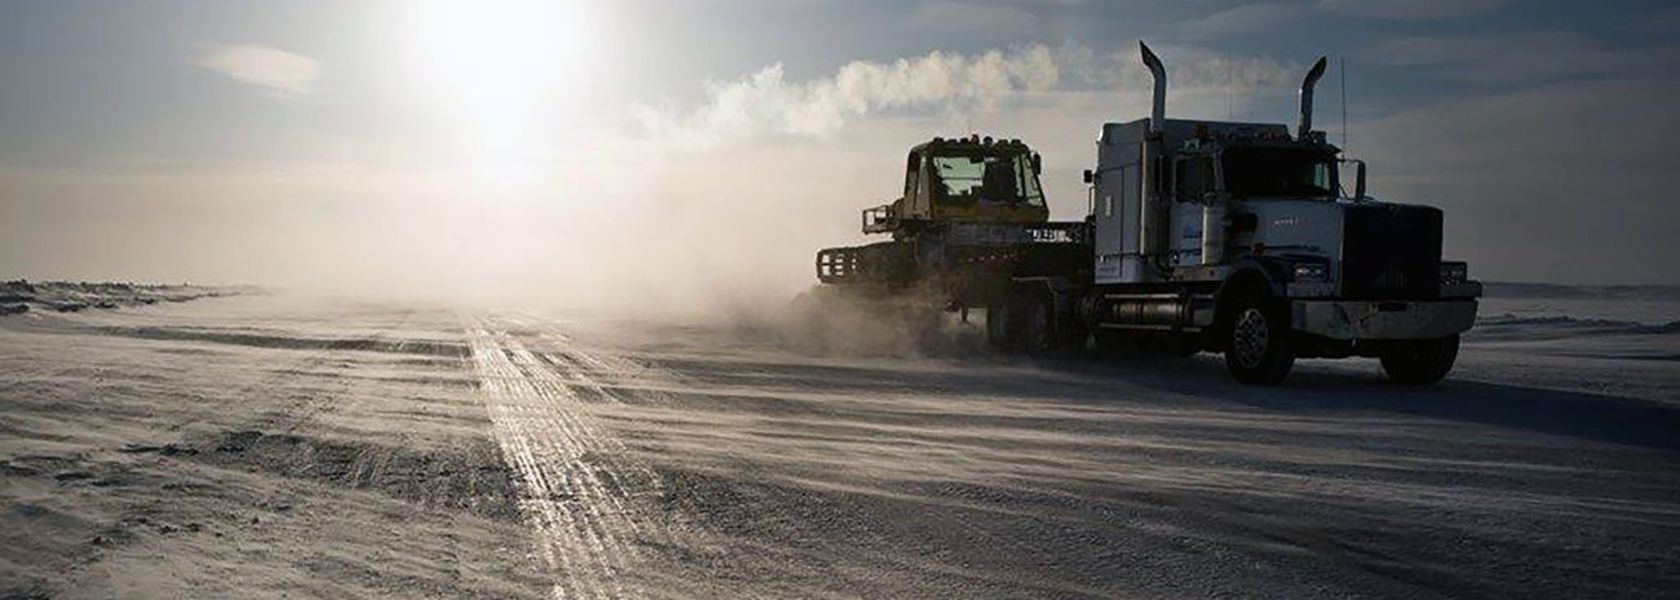 Record ice road season for De Beers